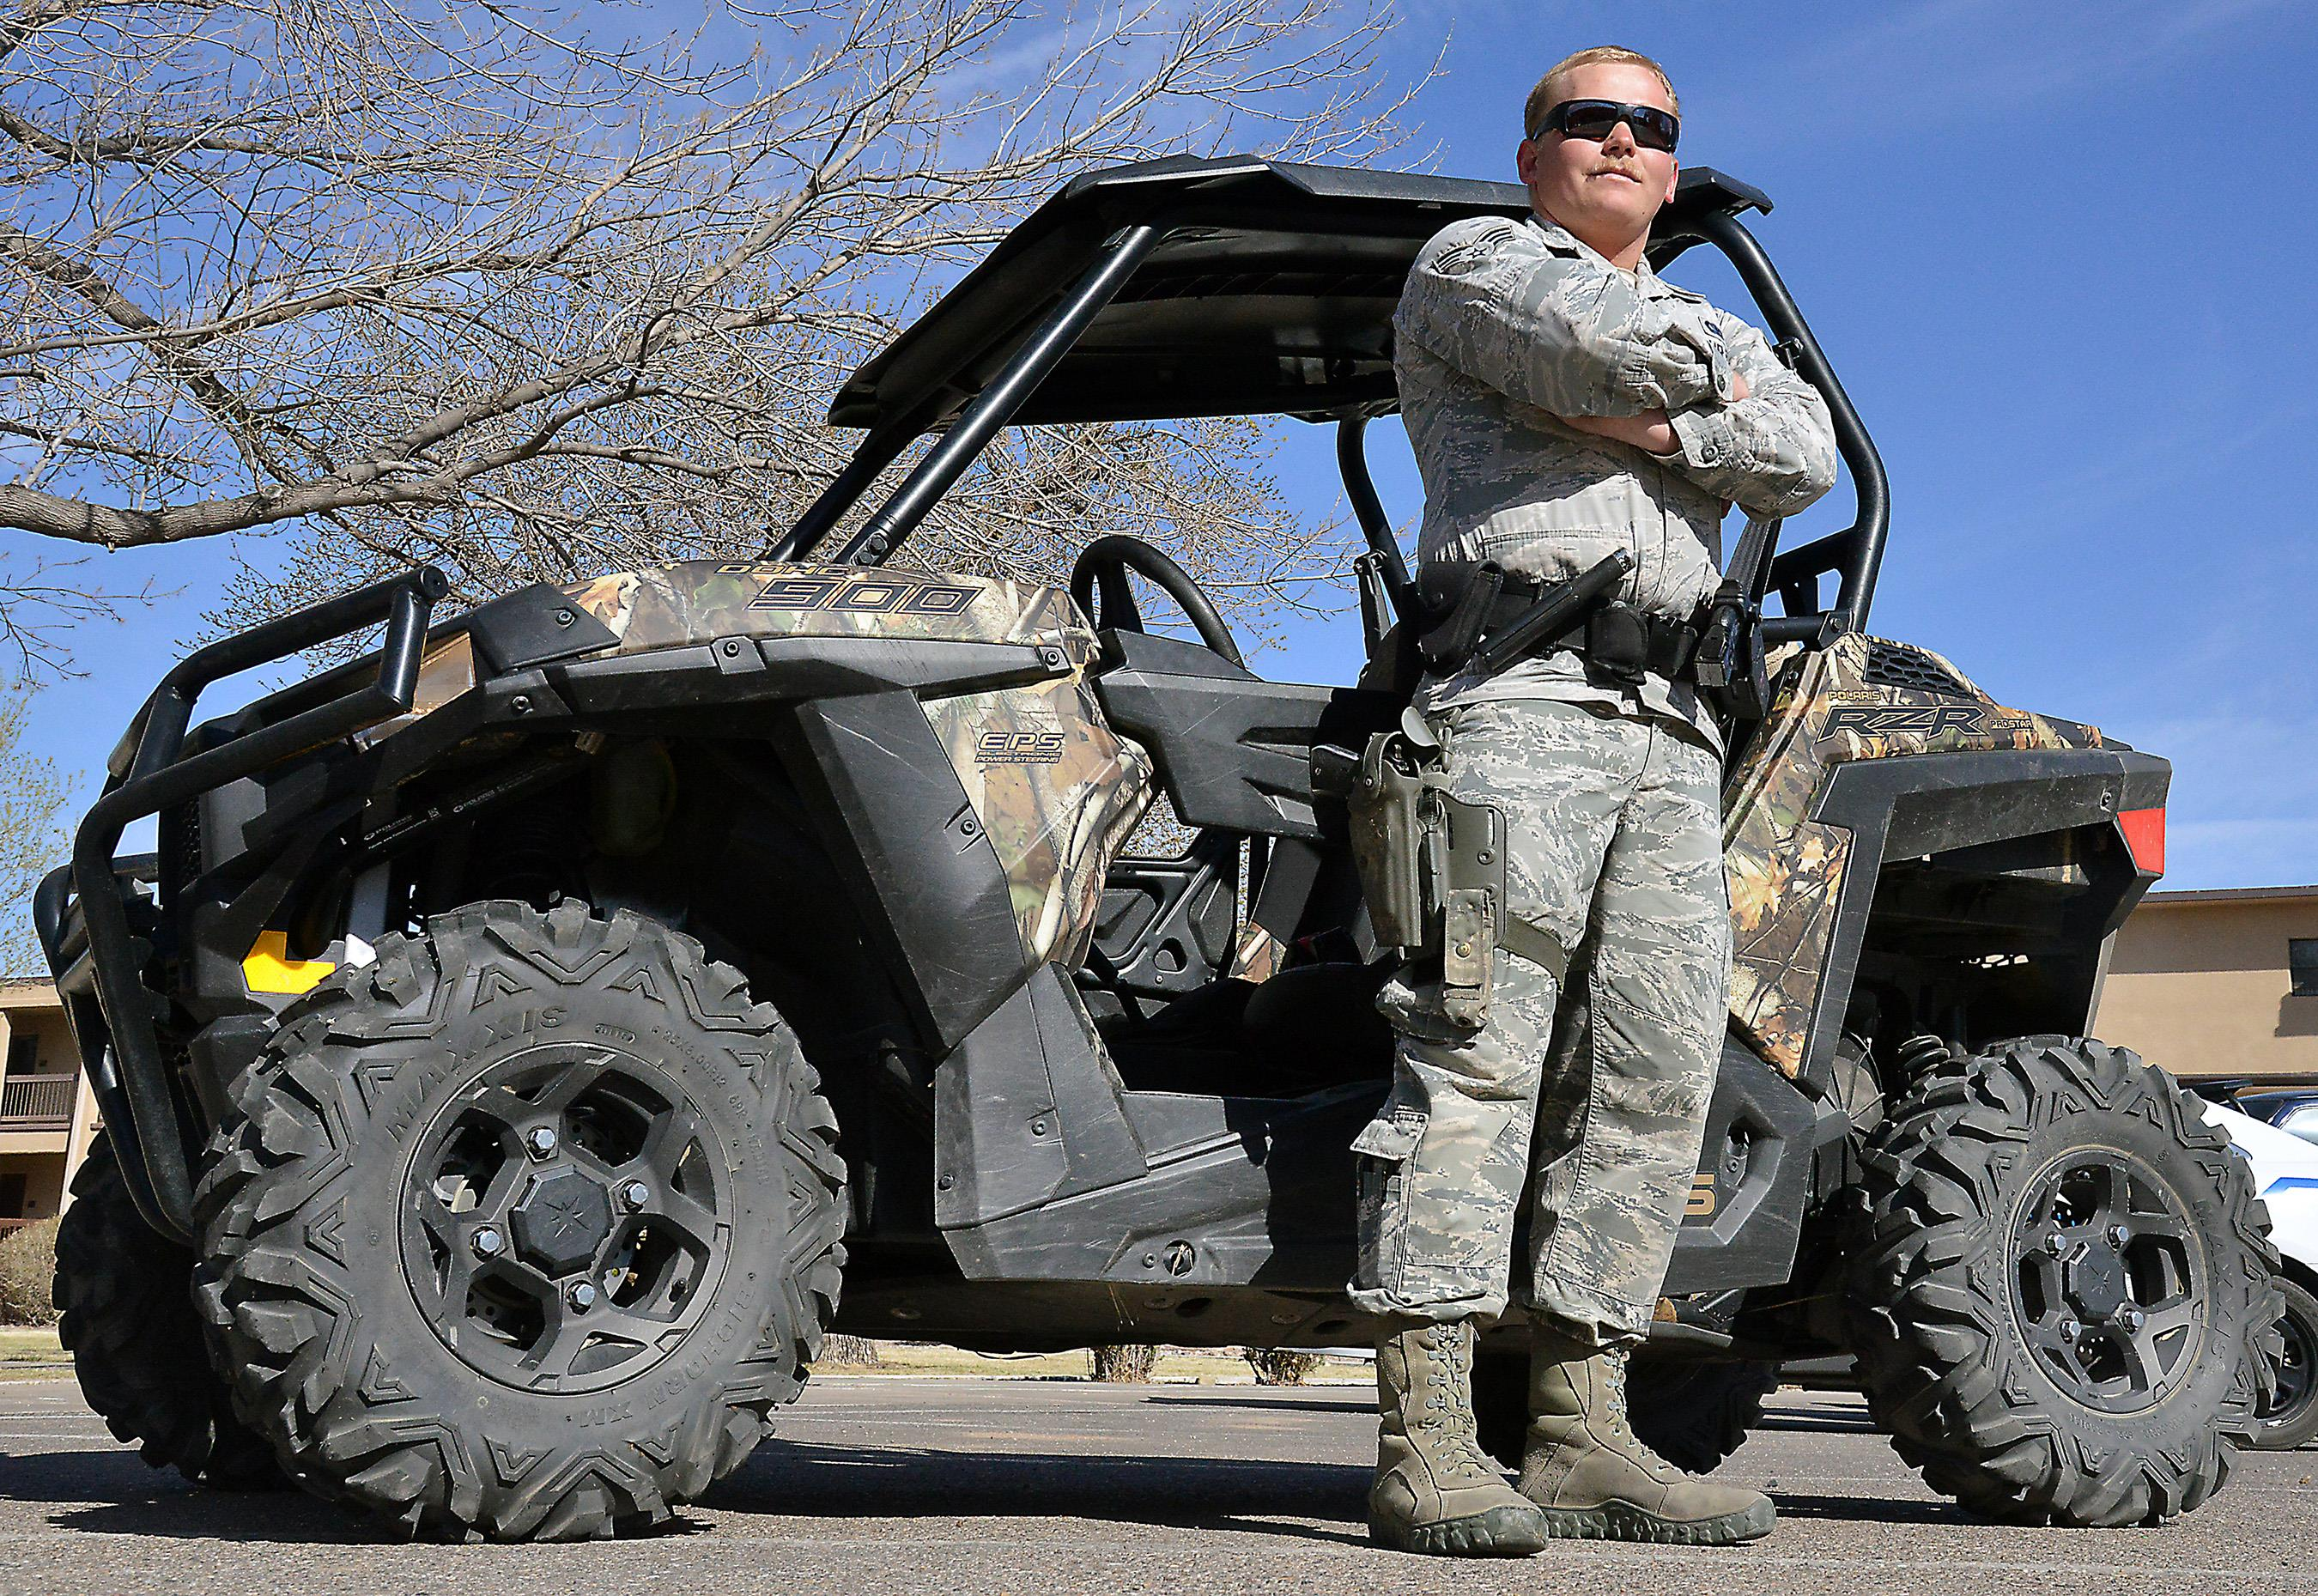 Unique vehicles aid Security Forces in patroling base > Air Force ...